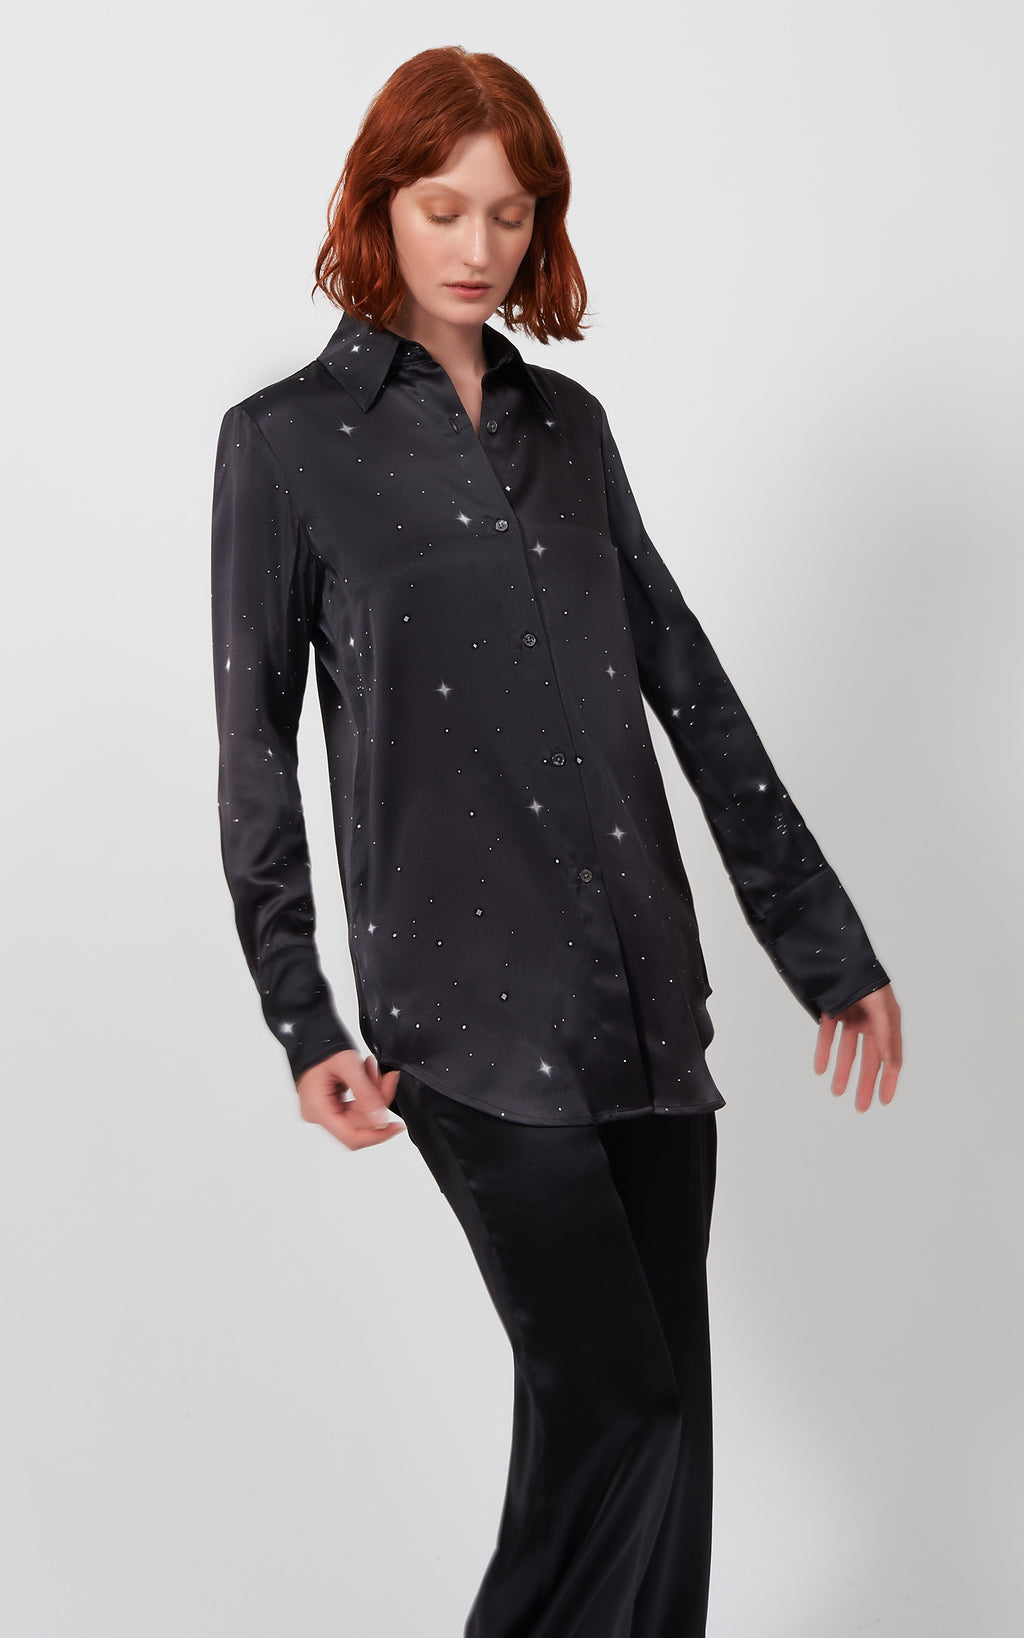 SHIRT TAIL TUNIC - CELESTIAL PRINT